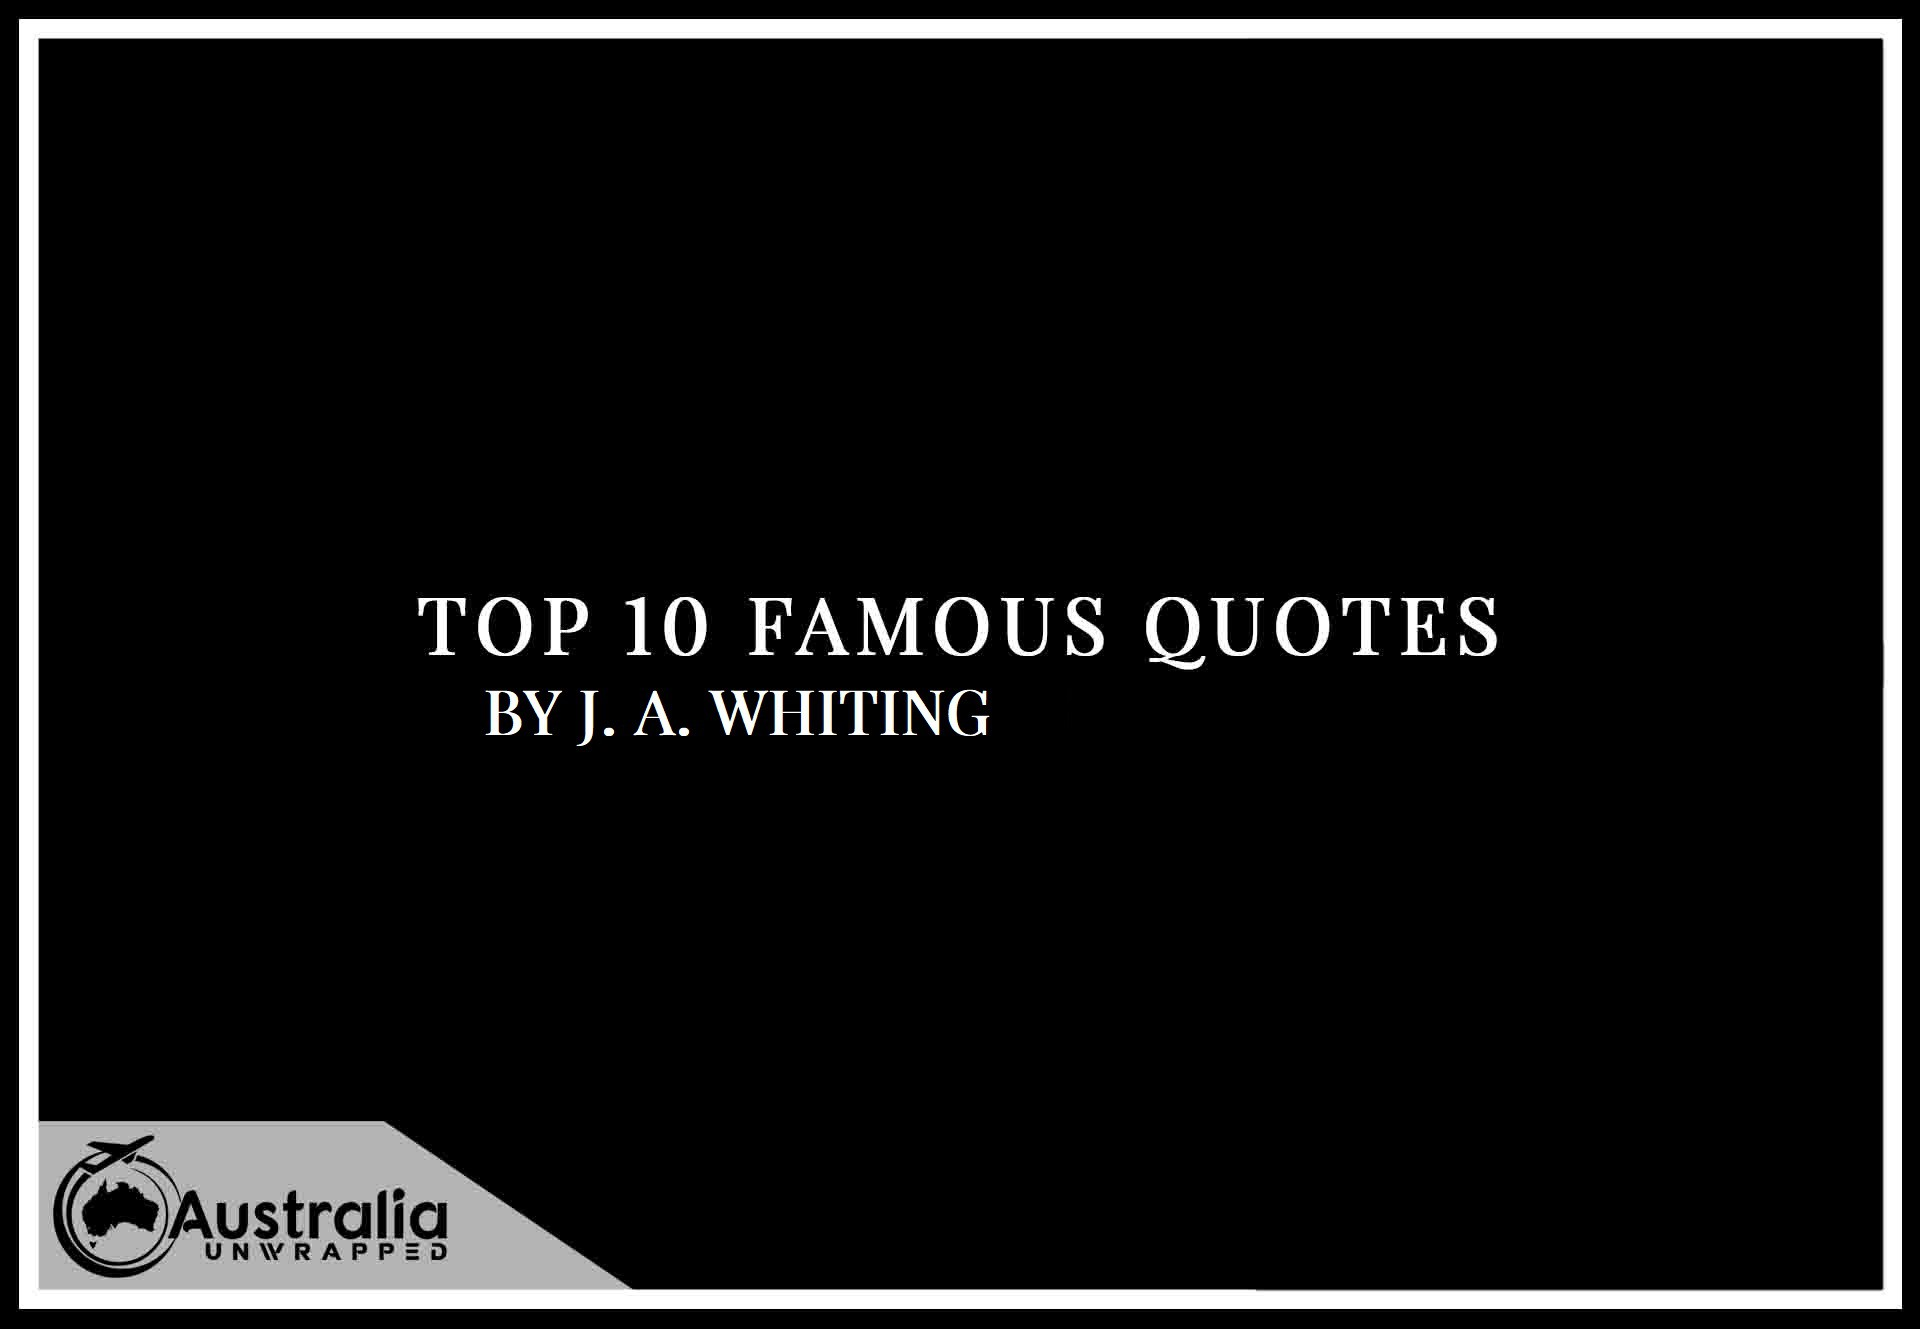 Top 10 Famous Quotes by Author J.A. Whiting